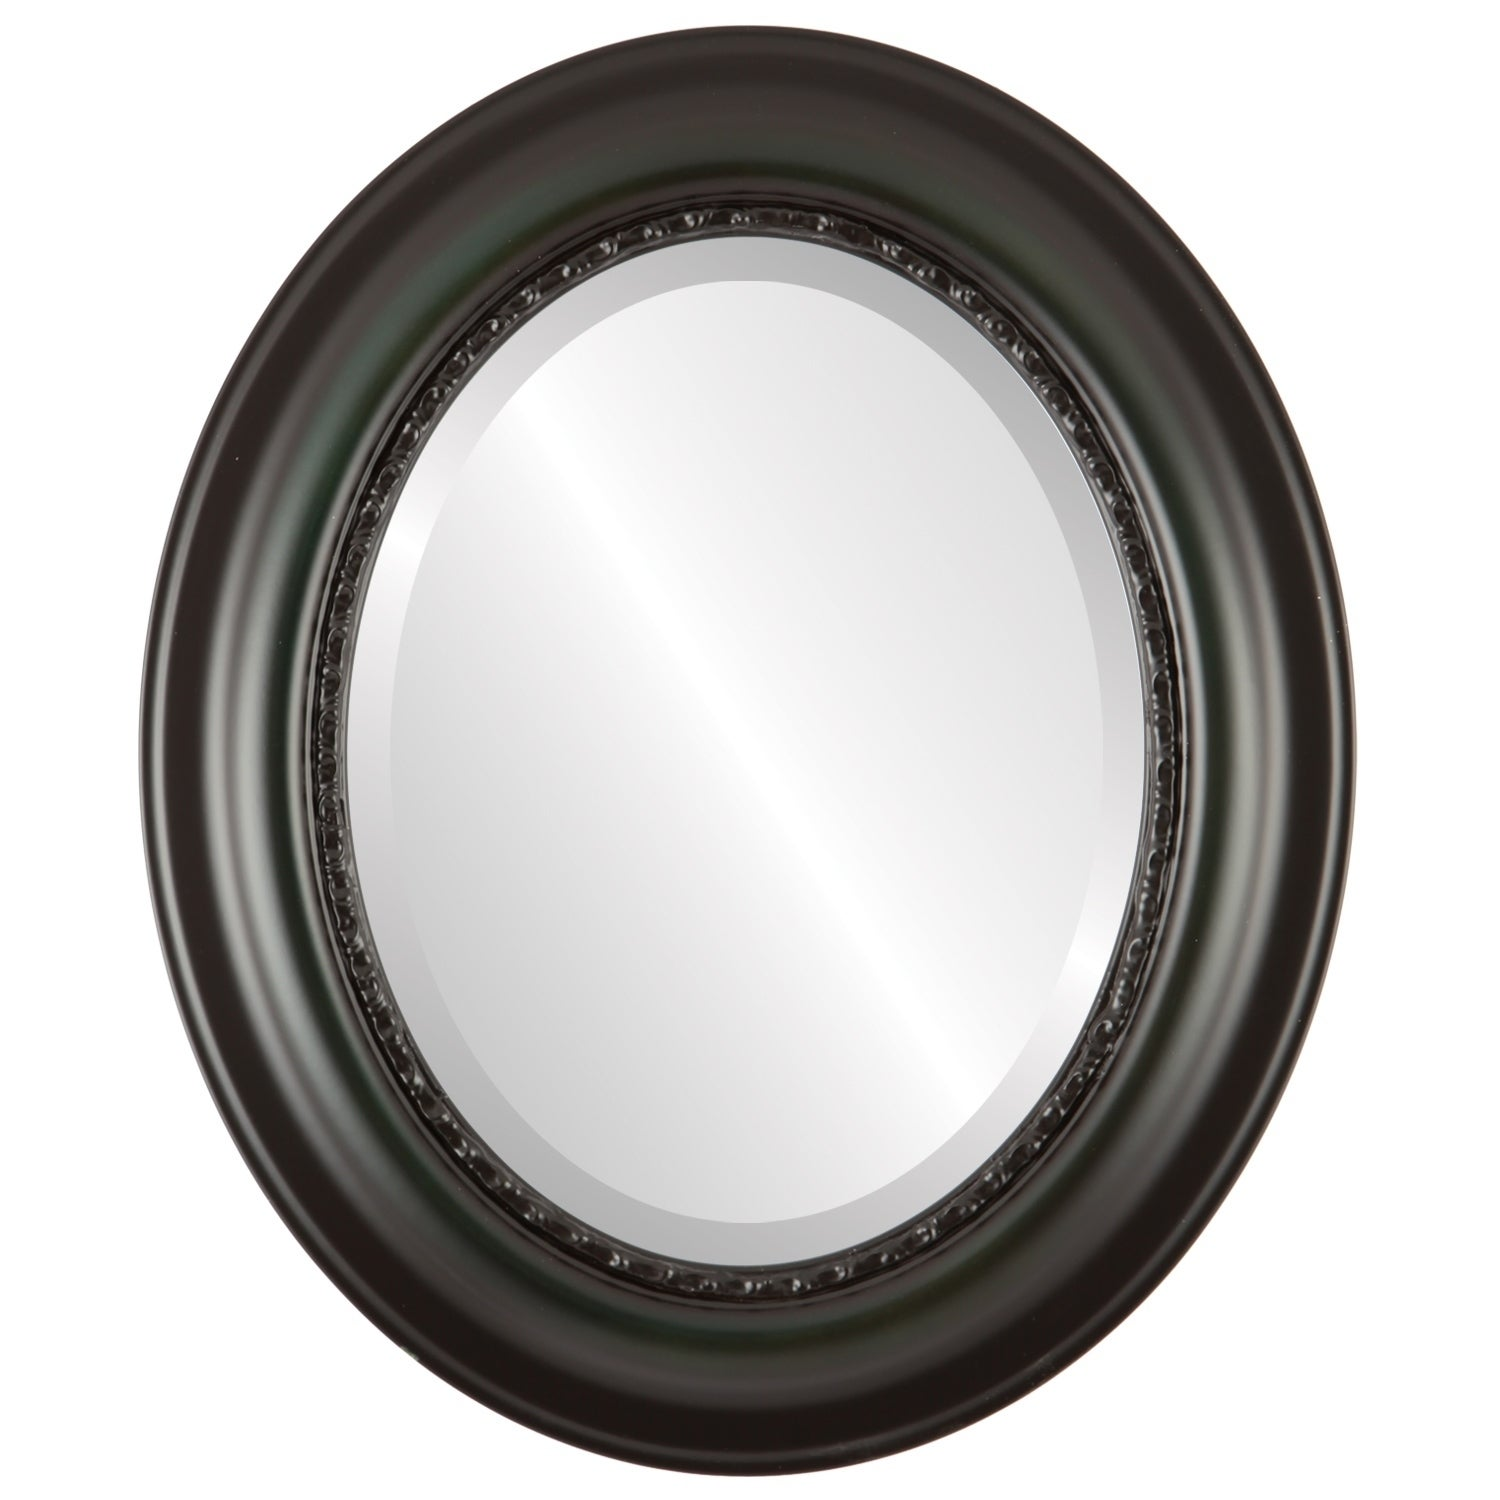 Chicago Framed Oval Mirror in Hunter Green - Green/Brown (25x35 - Medium (15-32 high))